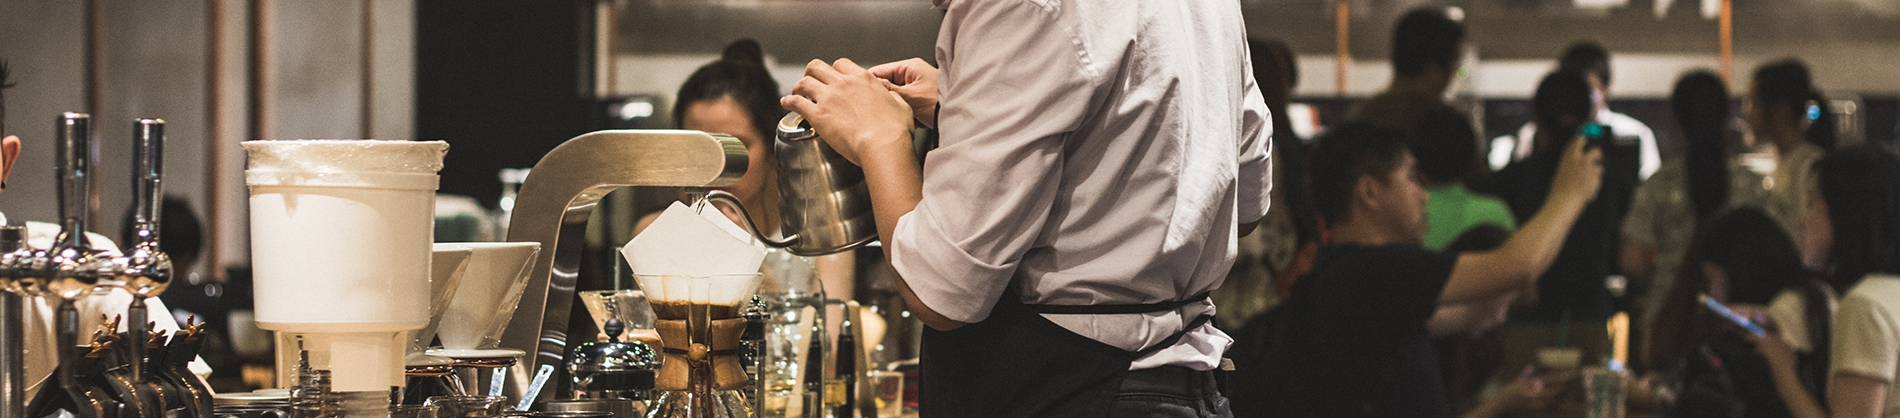 A man serving coffee in a restaurant